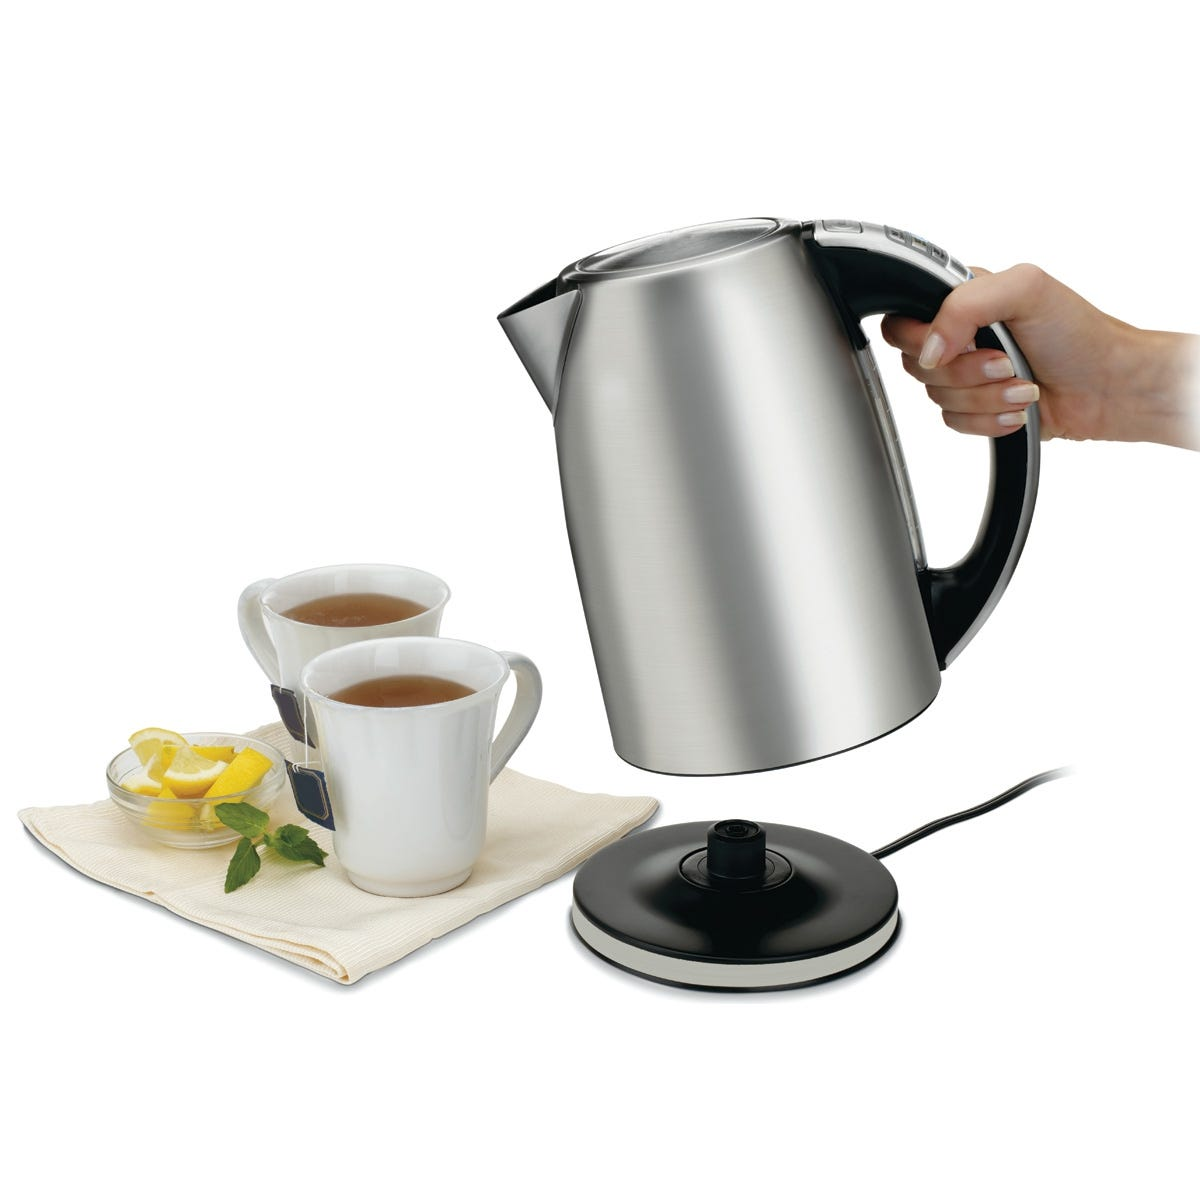 how to make tea in a electric kettle